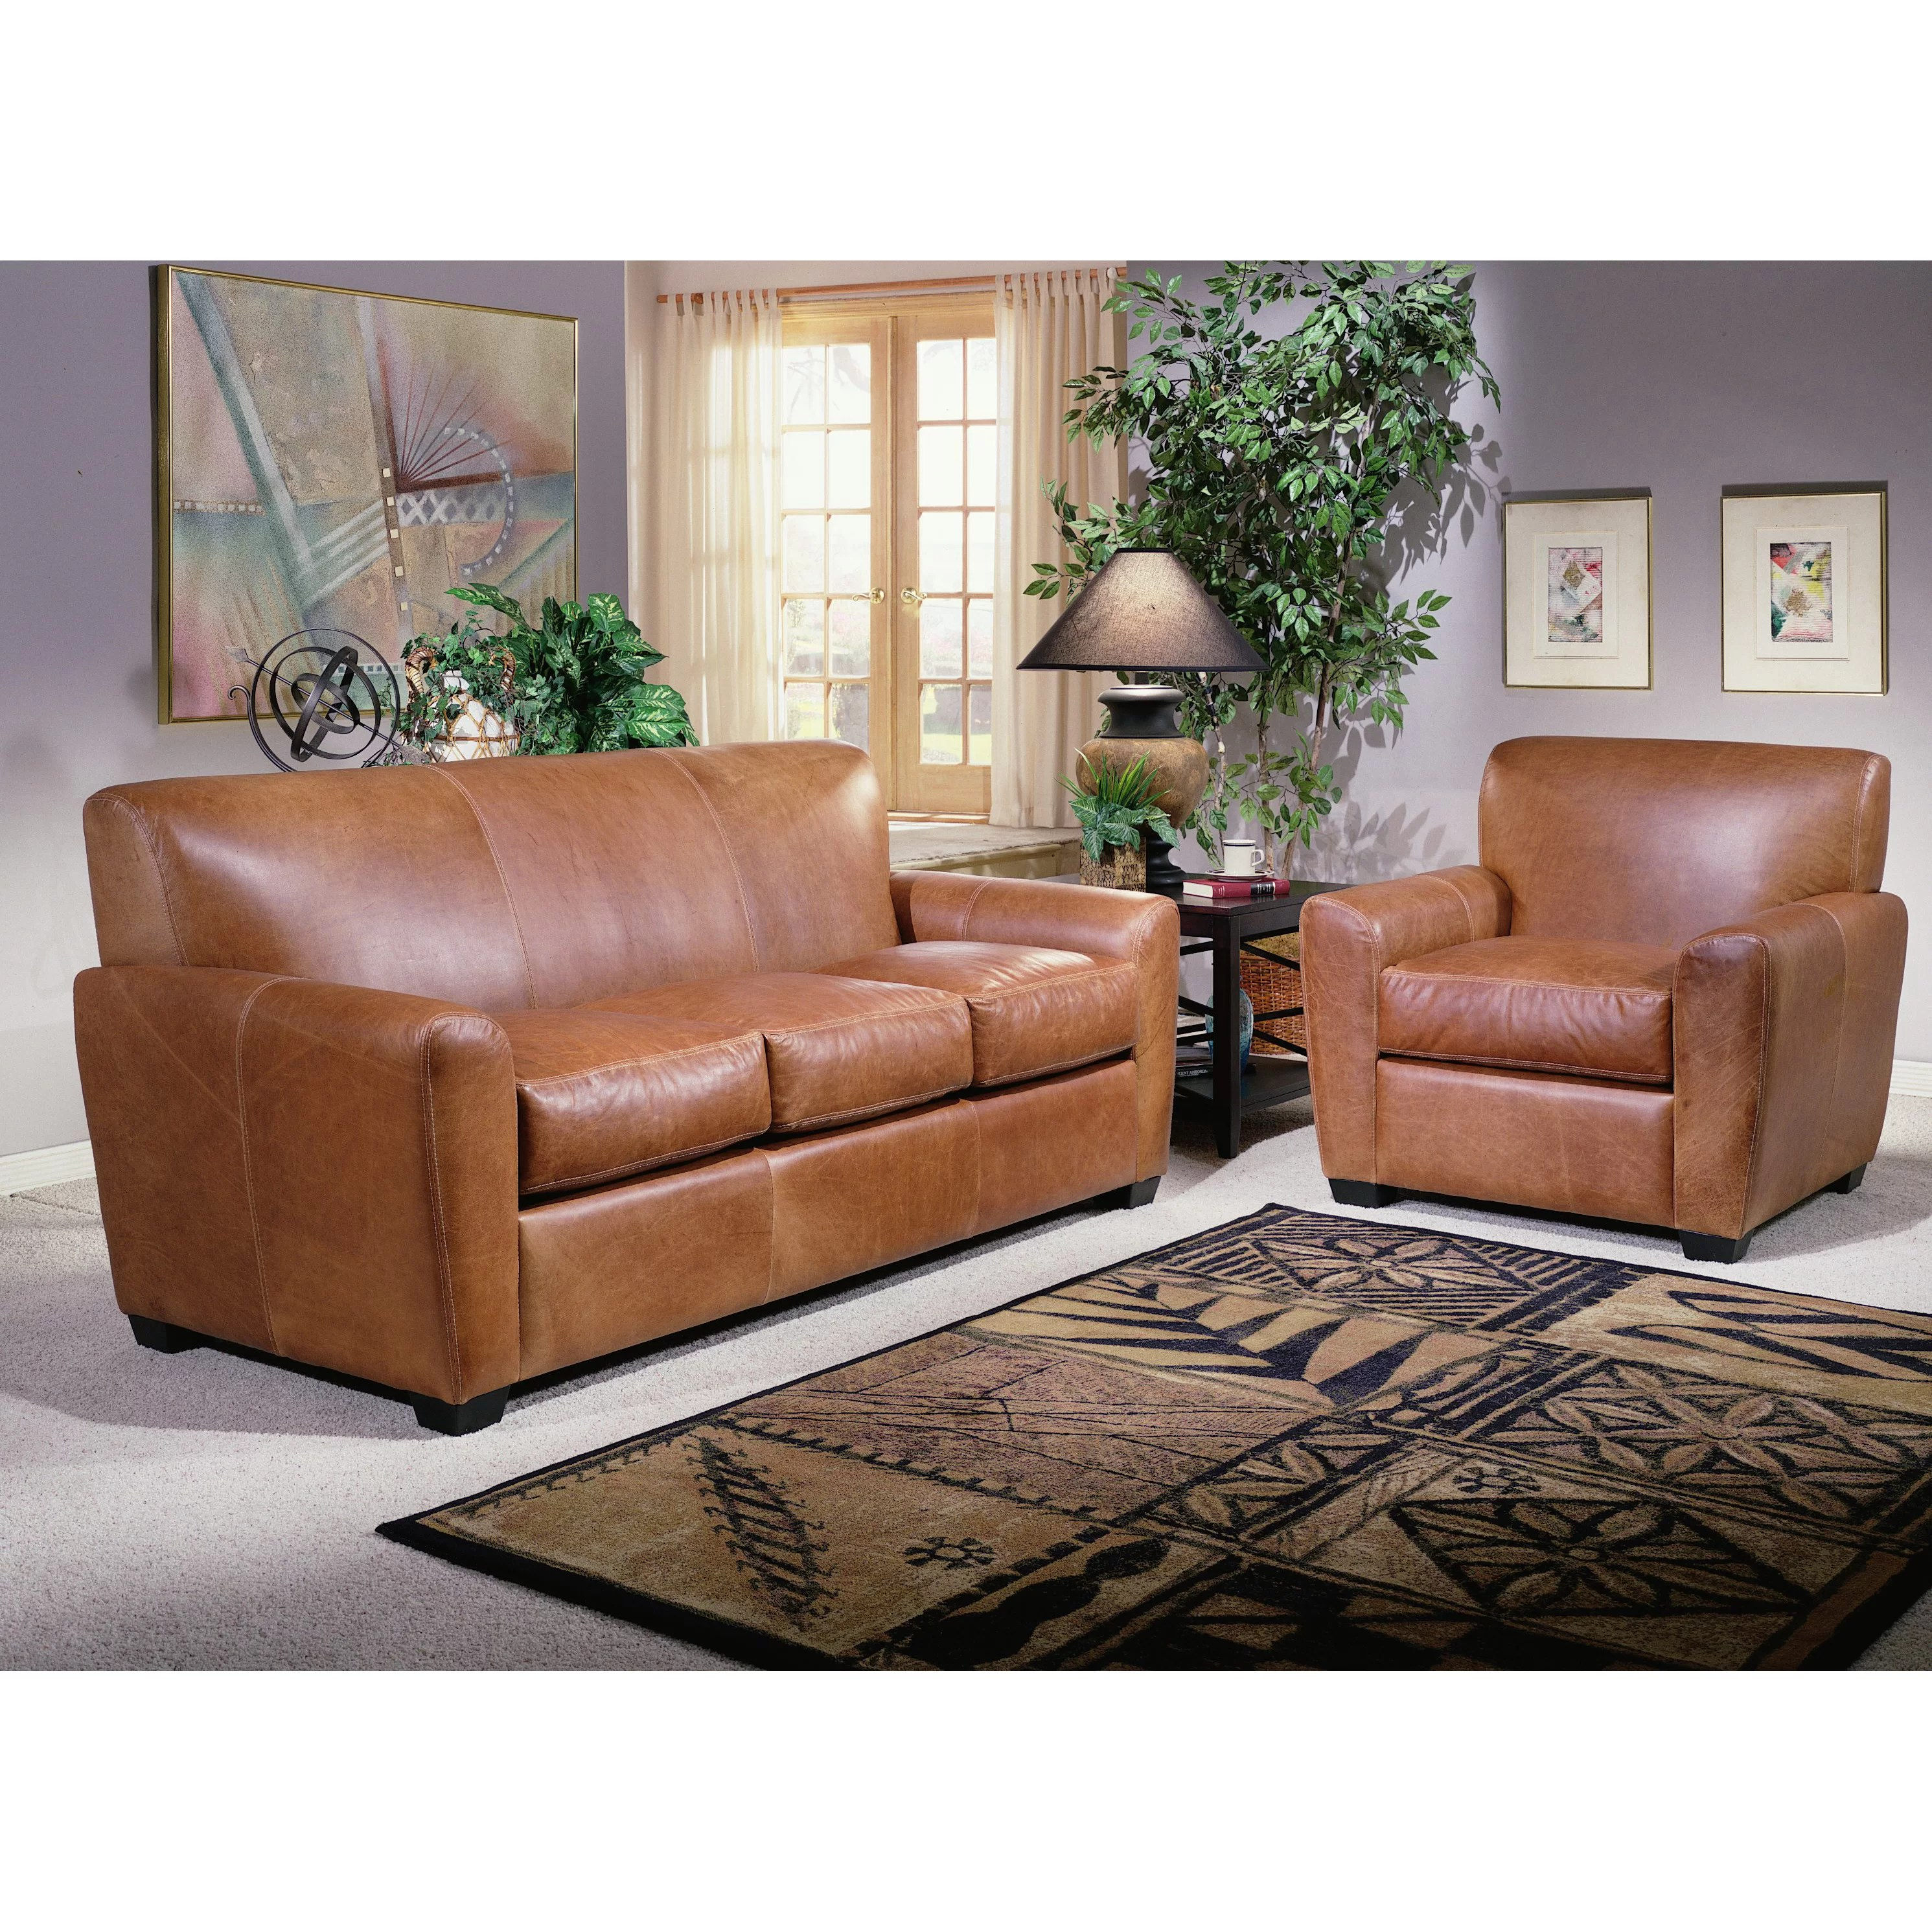 jackson suffolk sofa reviews fast 2001 omnia leather sleeper and wayfair